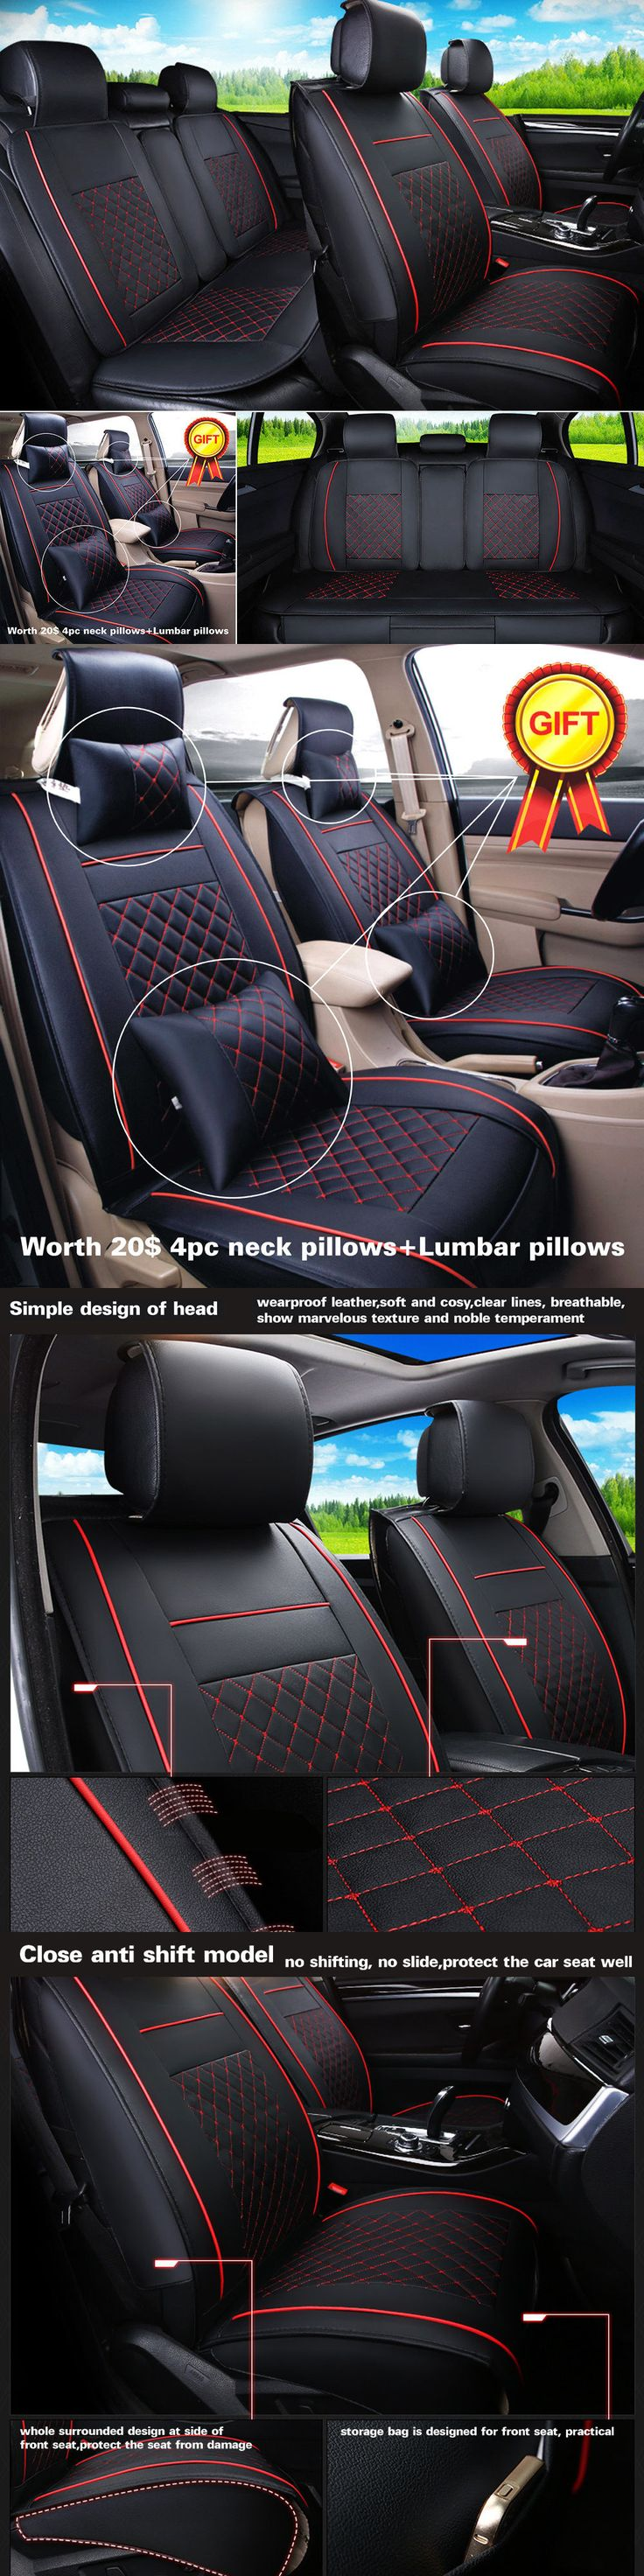 SUVs: Us Stock Pu Leather Black Red 5-Seat Car Suv L Size Seat Covers Front + Rear Set -> BUY IT NOW ONLY: $108 on eBay!